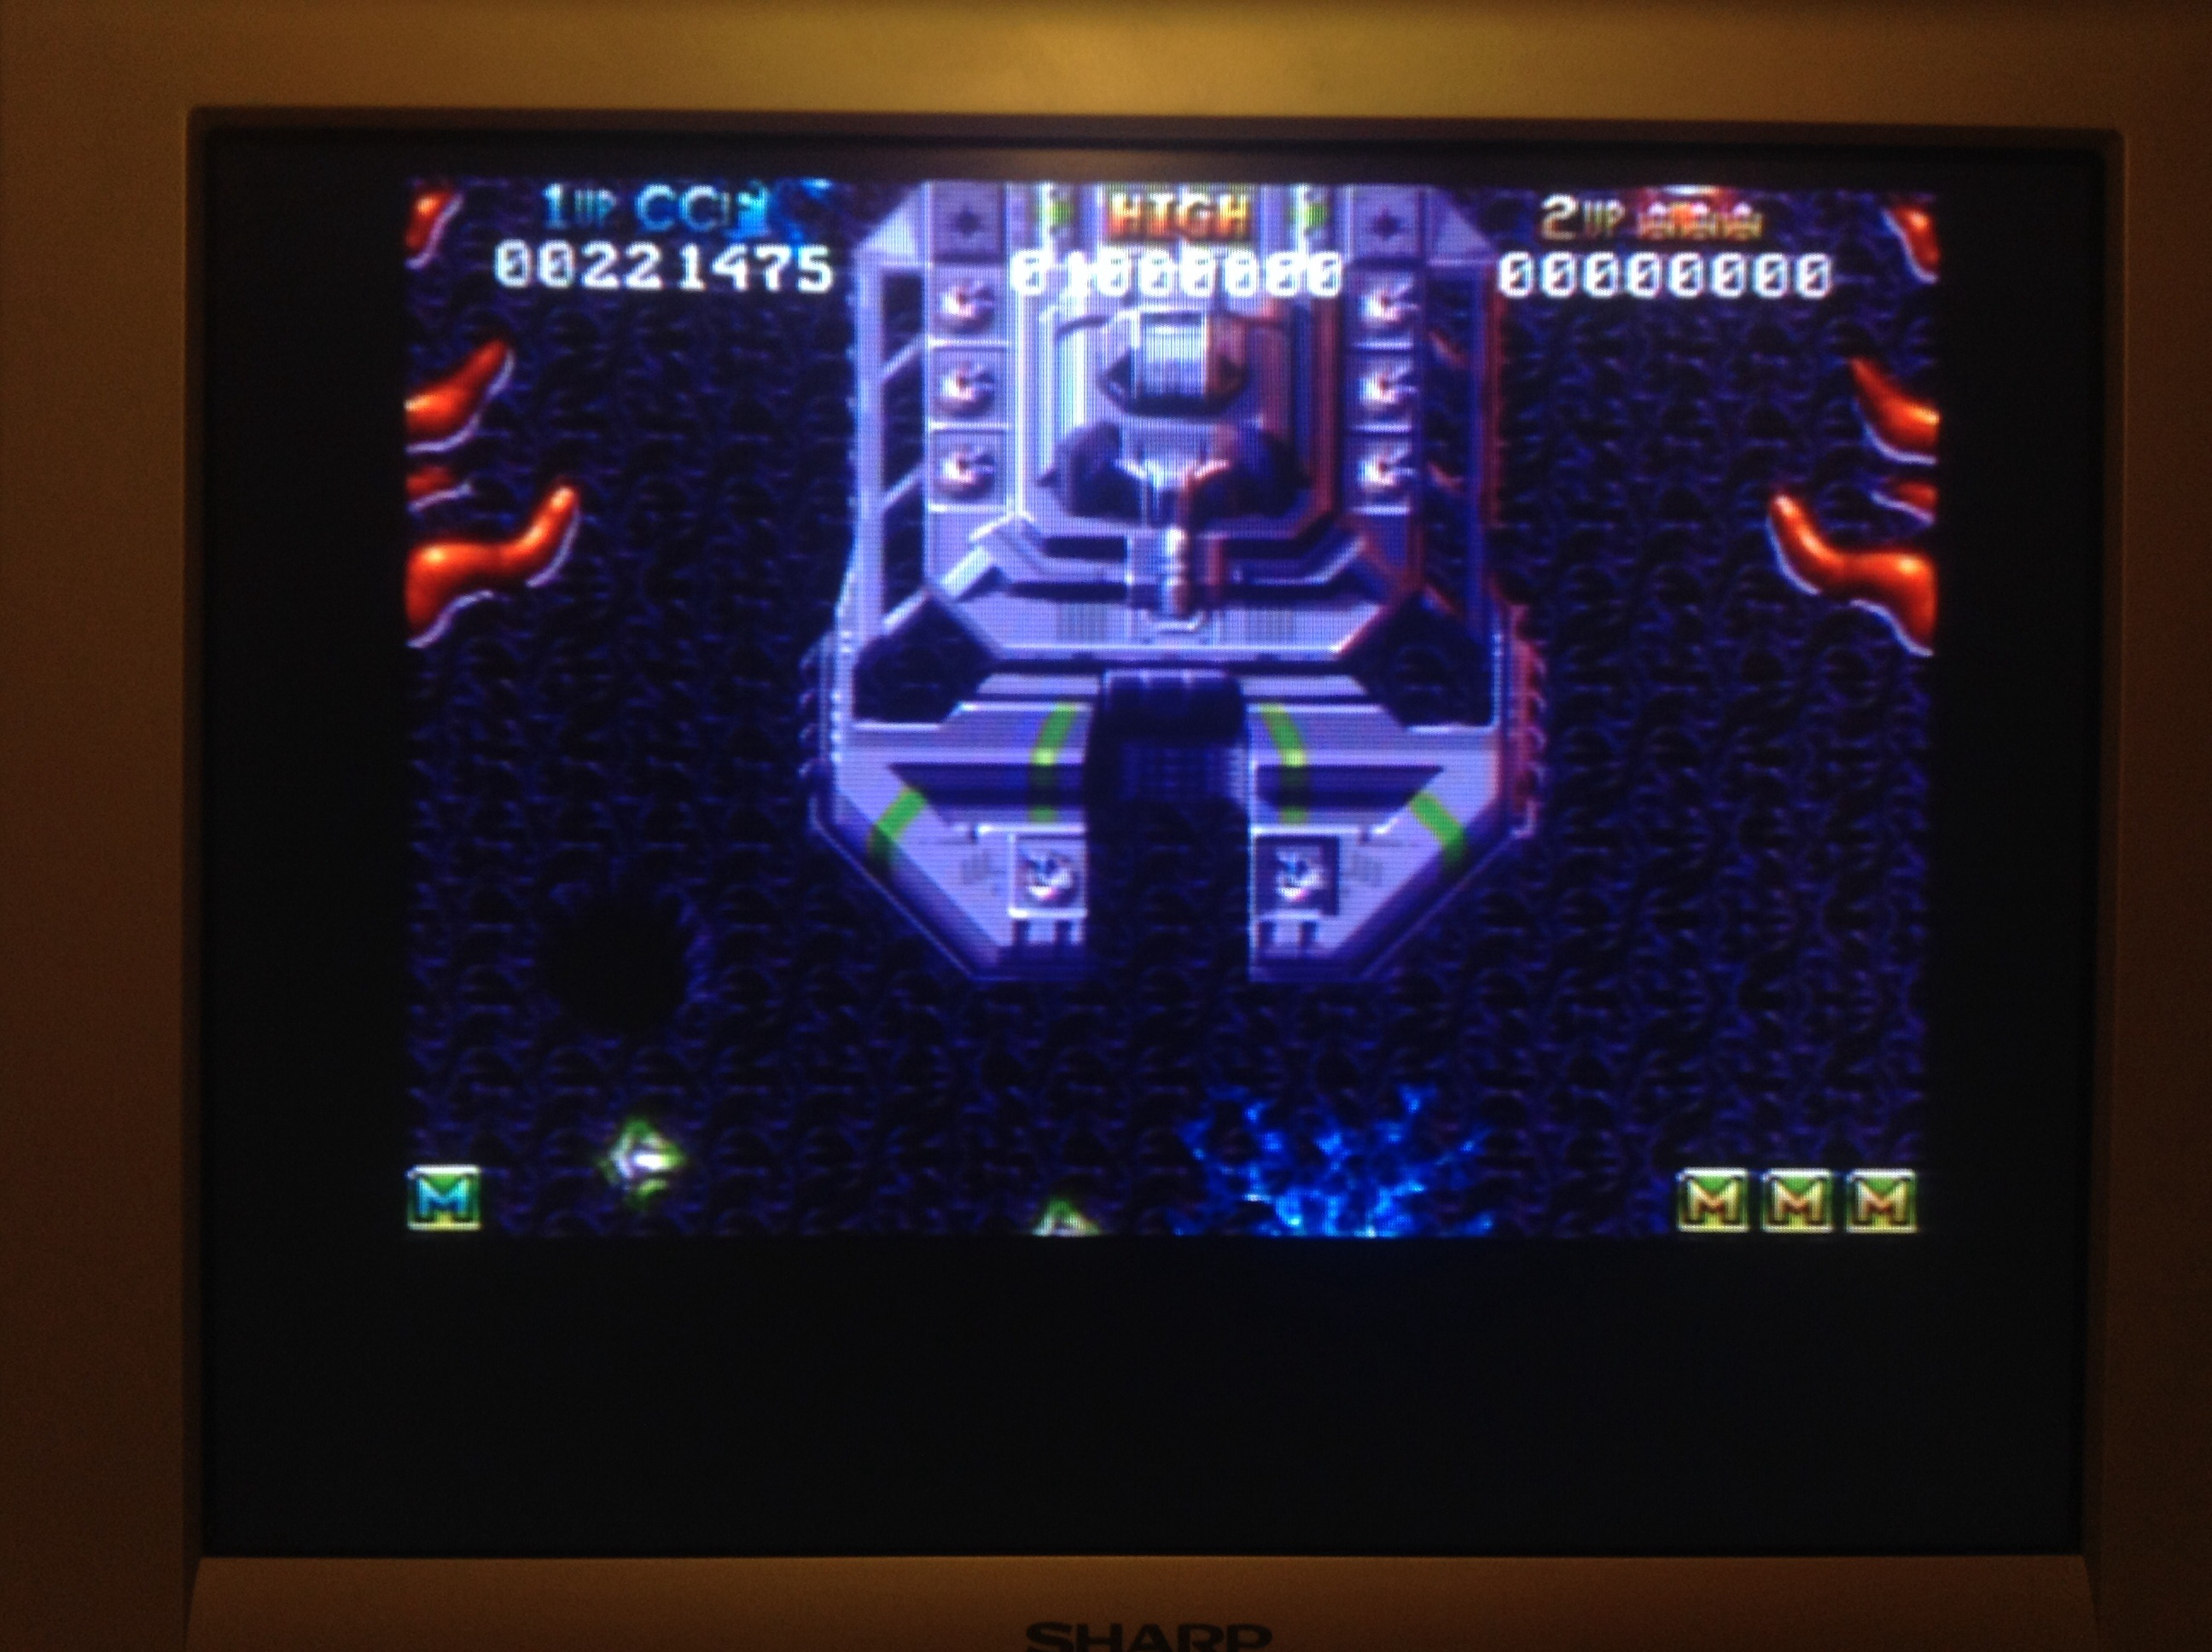 CoCoForest: Battle Squadron (Amiga) 221,475 points on 2014-09-18 04:32:50